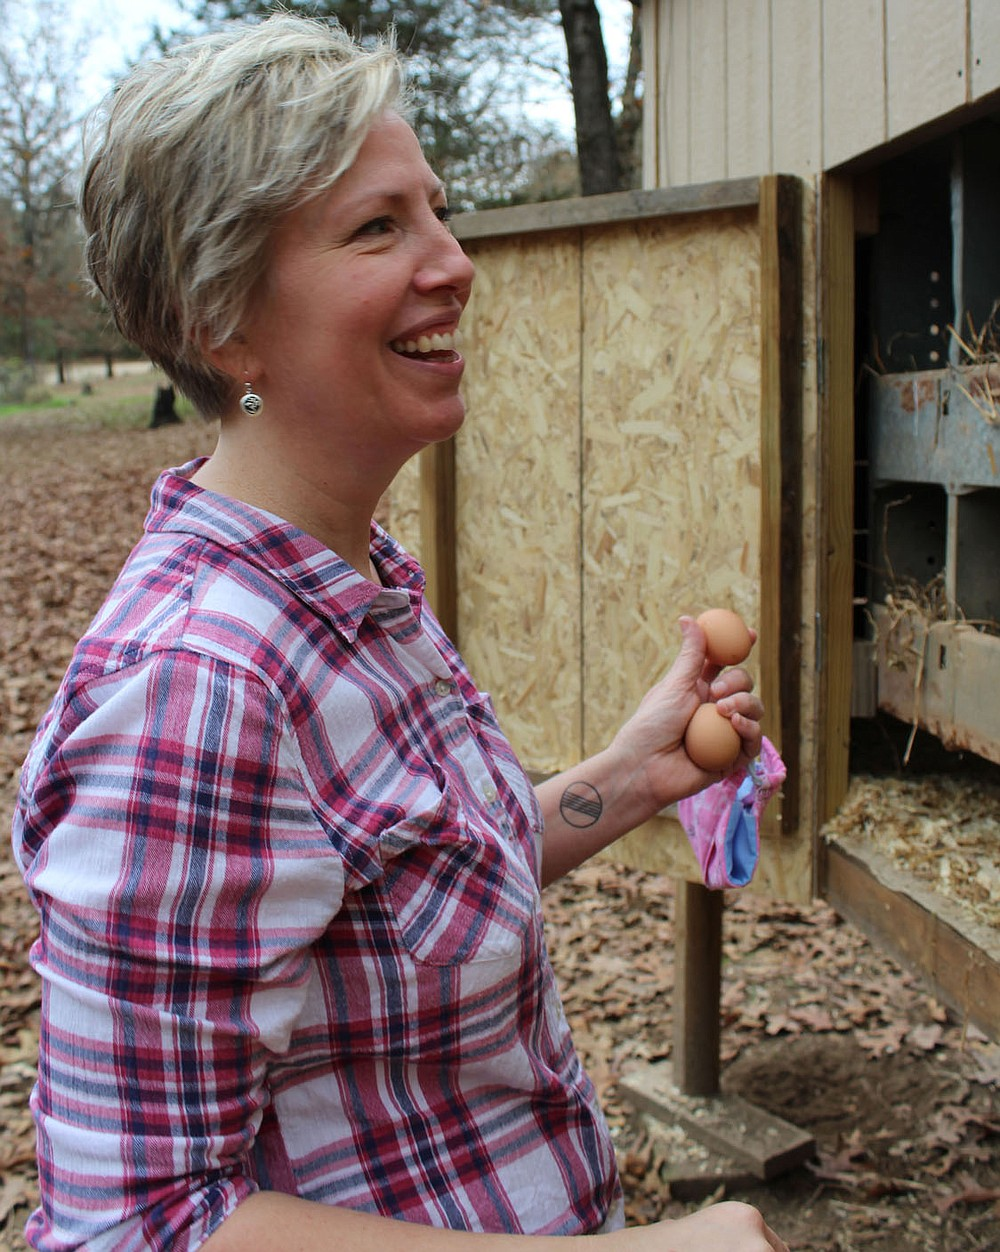 Anne Canada, a librarian at Paris Middle School, searches her chicken coop for eggs Nov. 21 at her Subiaco home. The coop was built to house chickens and roosters hatched in support of a virtual 4-H program offered for students when schools shutdown for onsite instruction in the spring.  (NWA Democrat-Gazette/Mary Jordan)